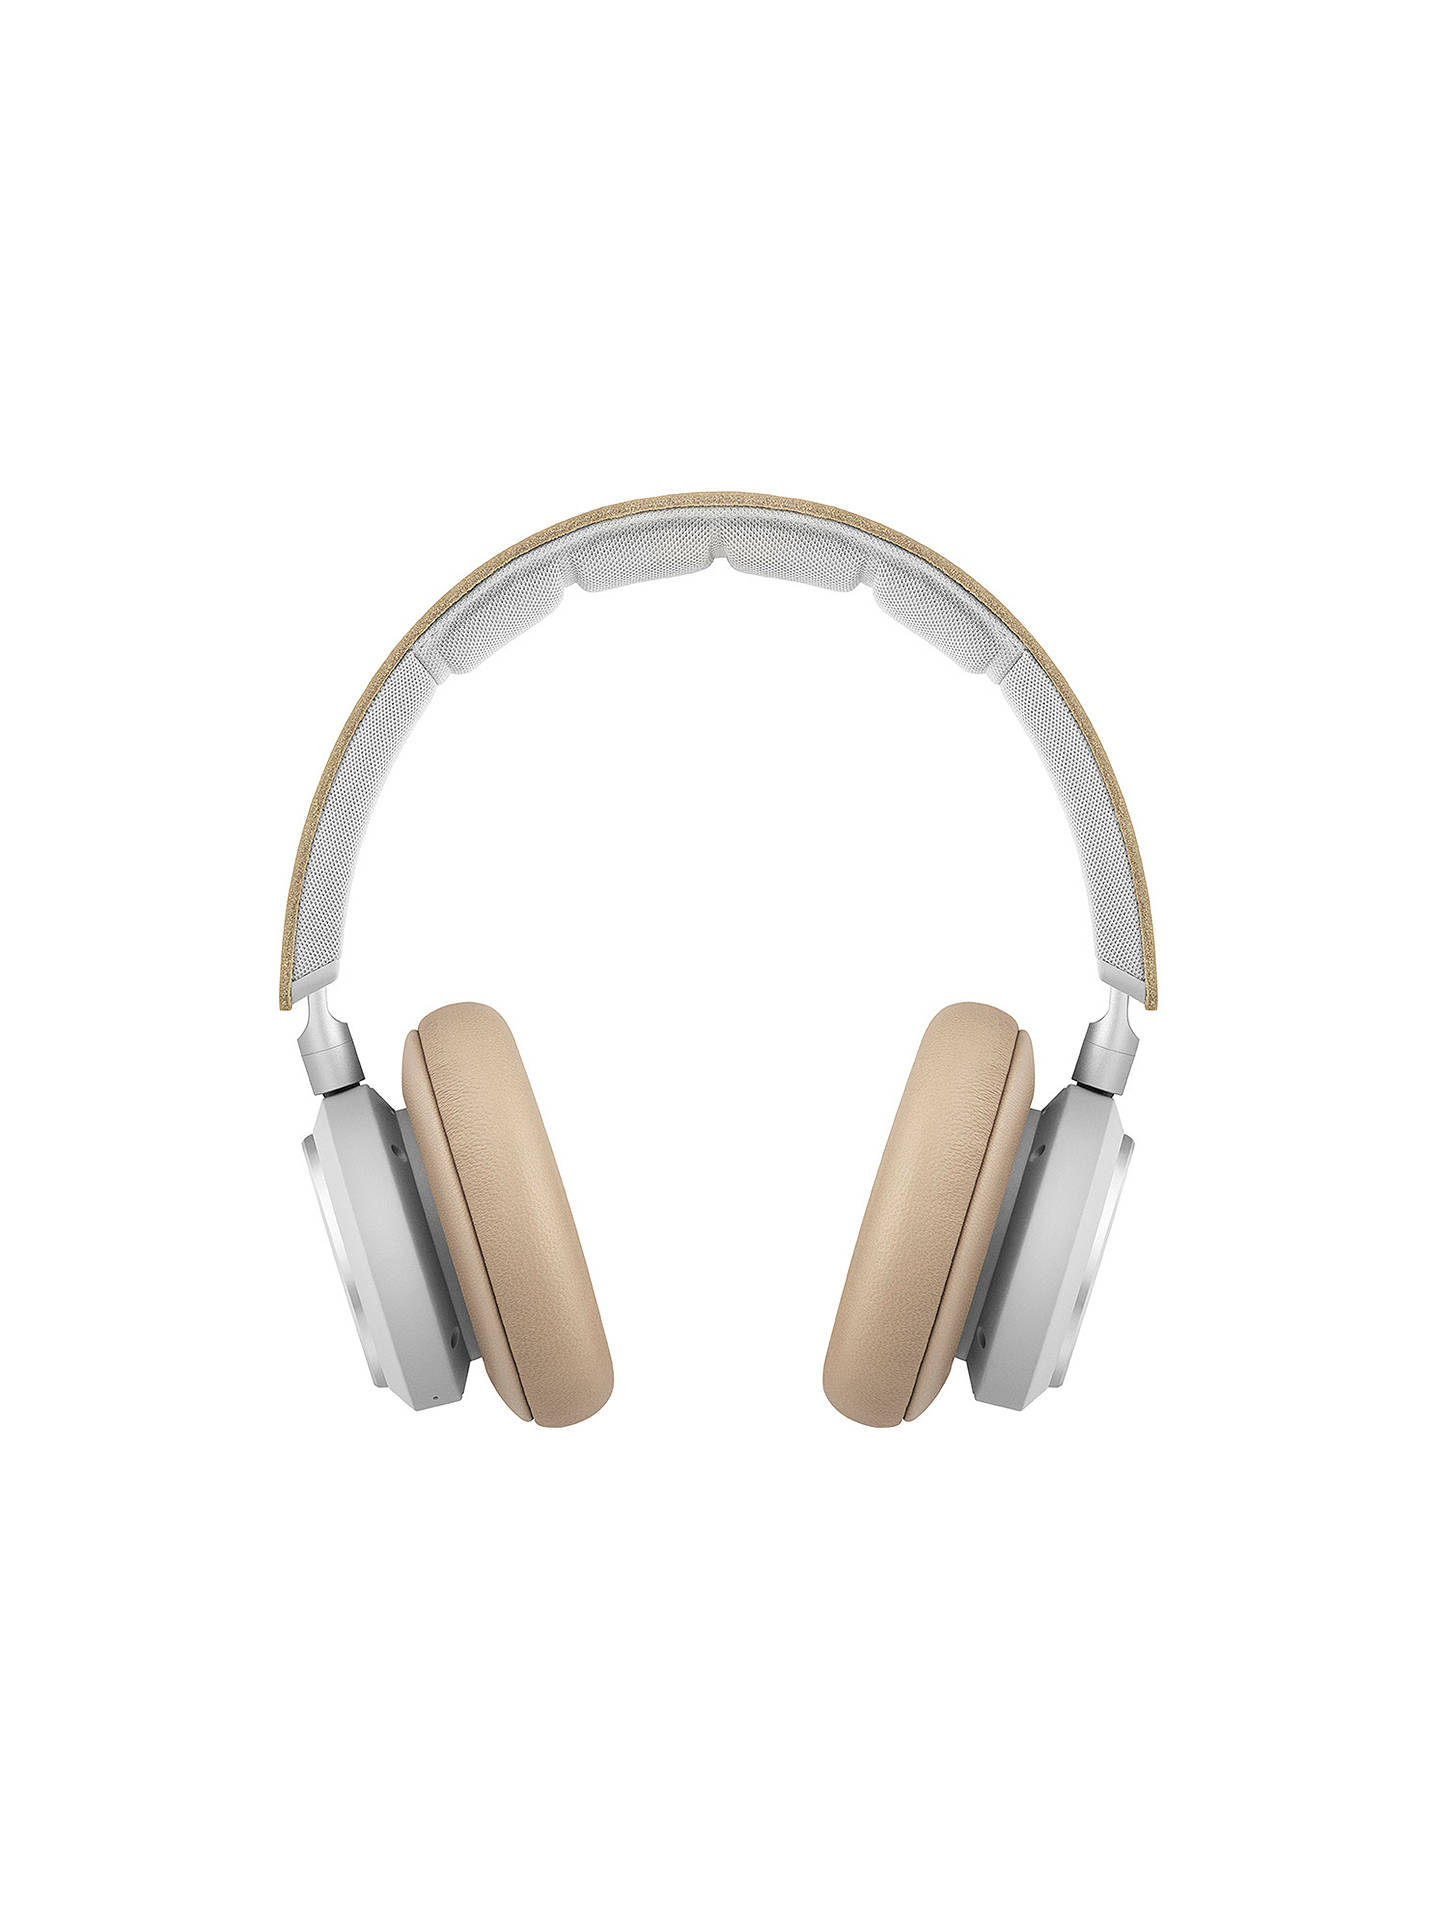 Buy Bang & Olufsen Beoplay H9i Wireless Bluetooth Active Noise Cancelling Over-Ear Headphones with Intuitive Touch Controls & Transparency Mode, Natural Online at johnlewis.com